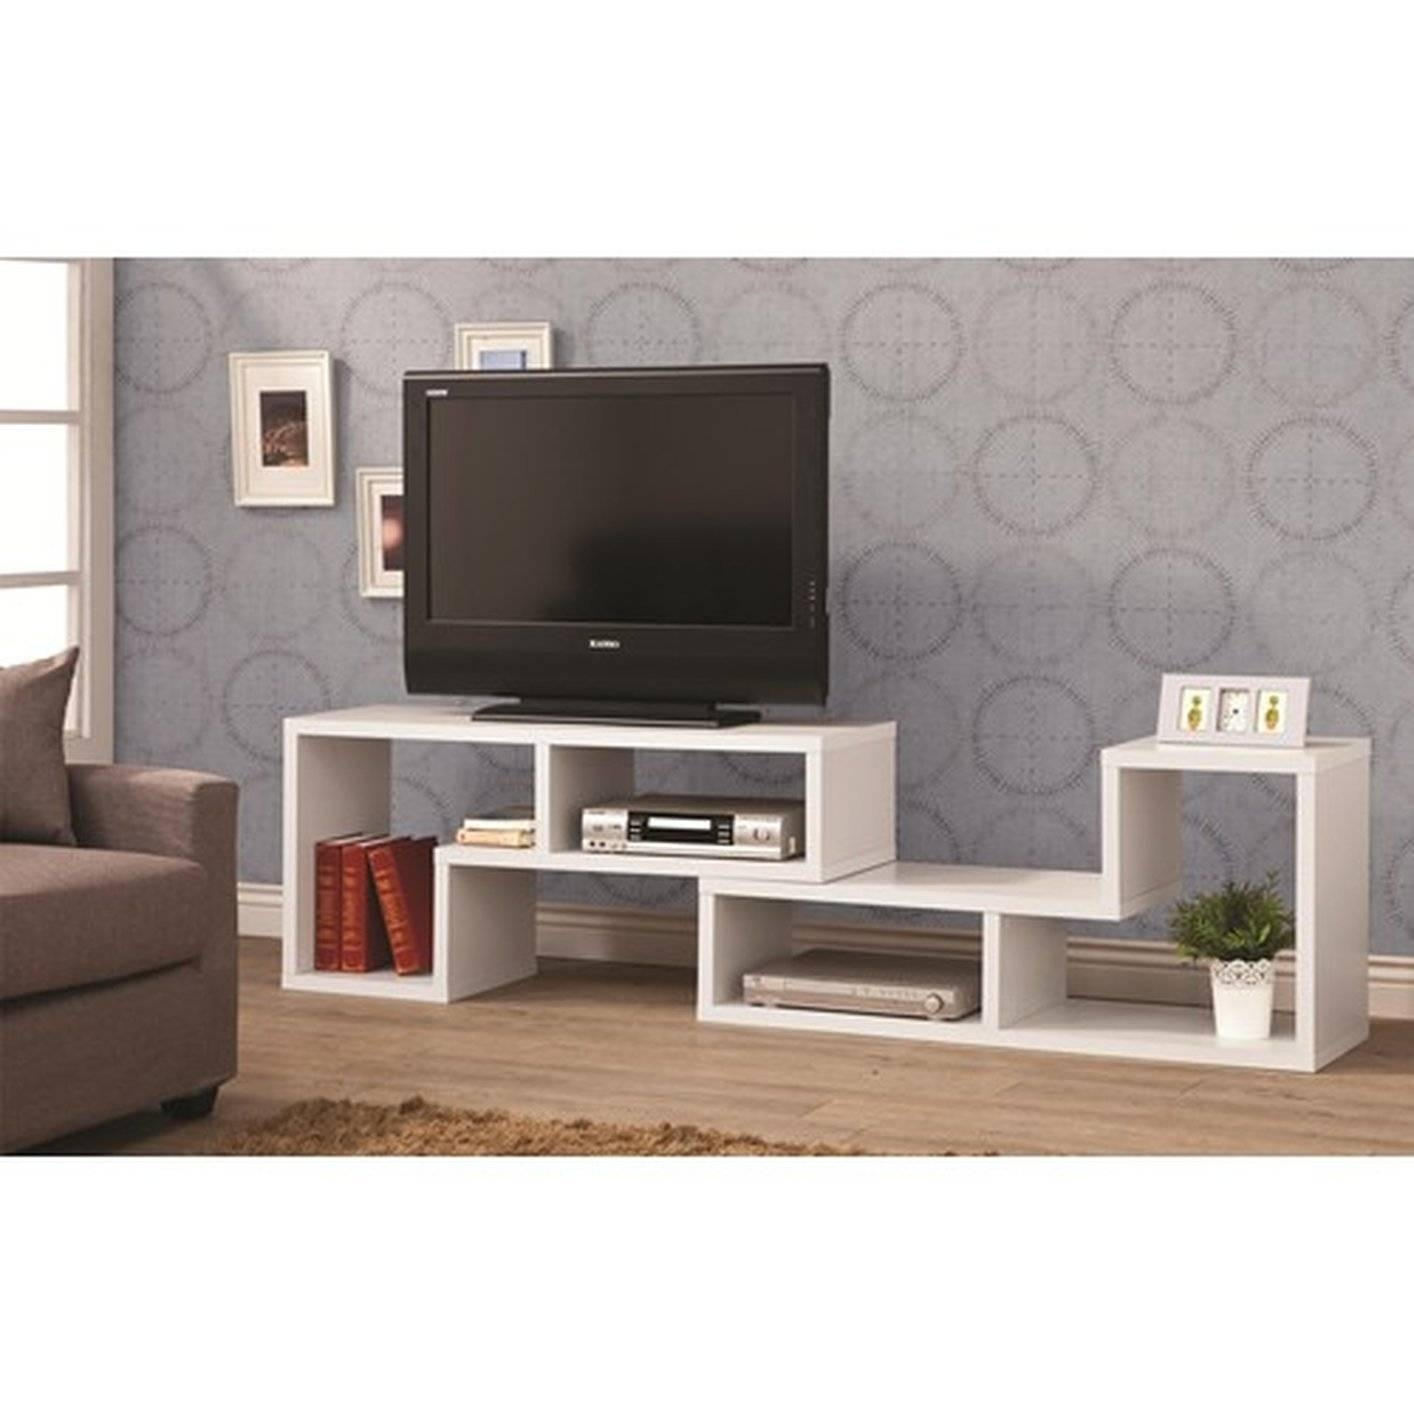 White Wood Tv Stand - Steal-A-Sofa Furniture Outlet Los Angeles Ca within White and Wood Tv Stands (Image 11 of 15)